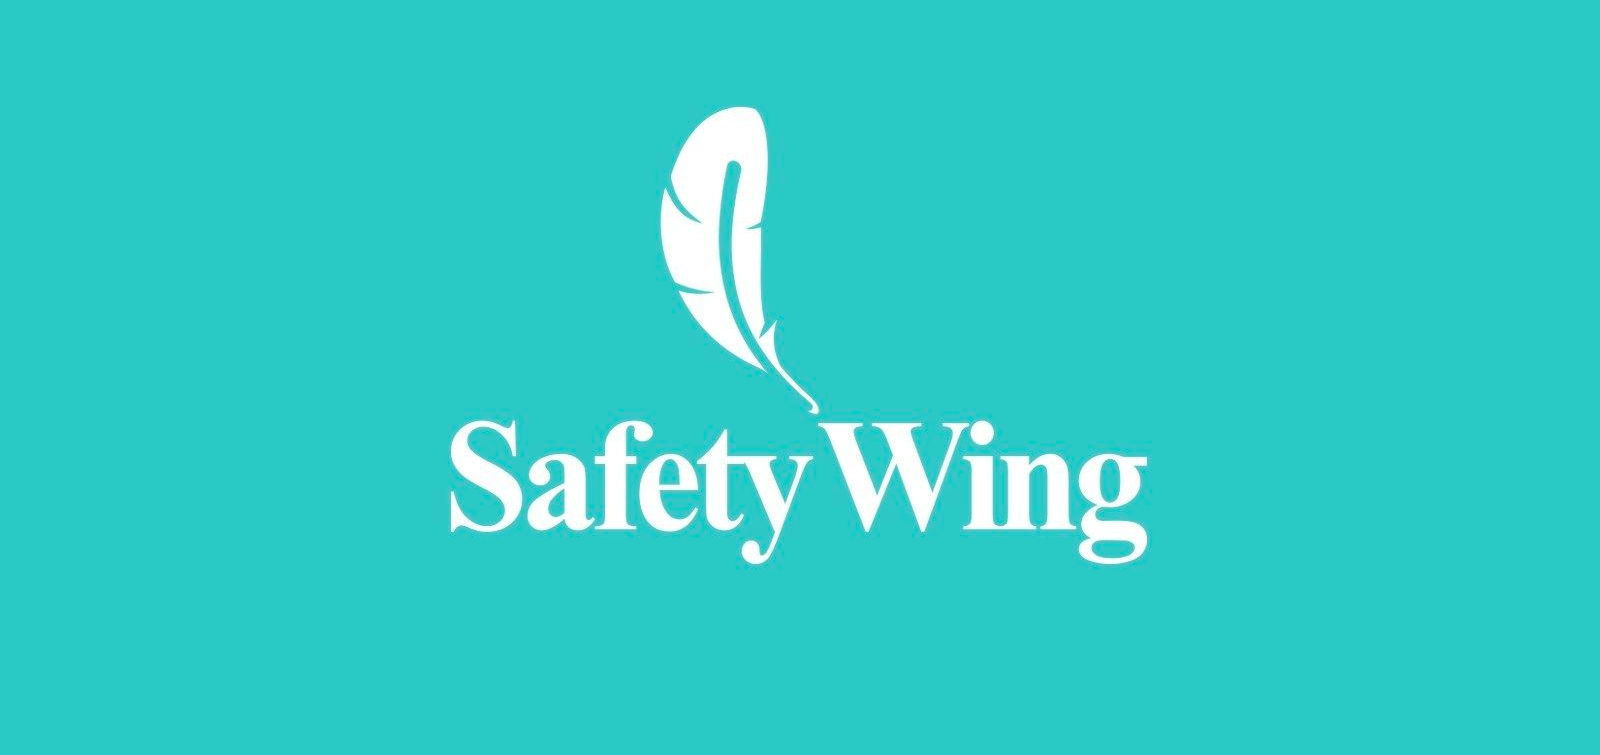 How SafetyWing Uses Teamflow for Synchronous Communication